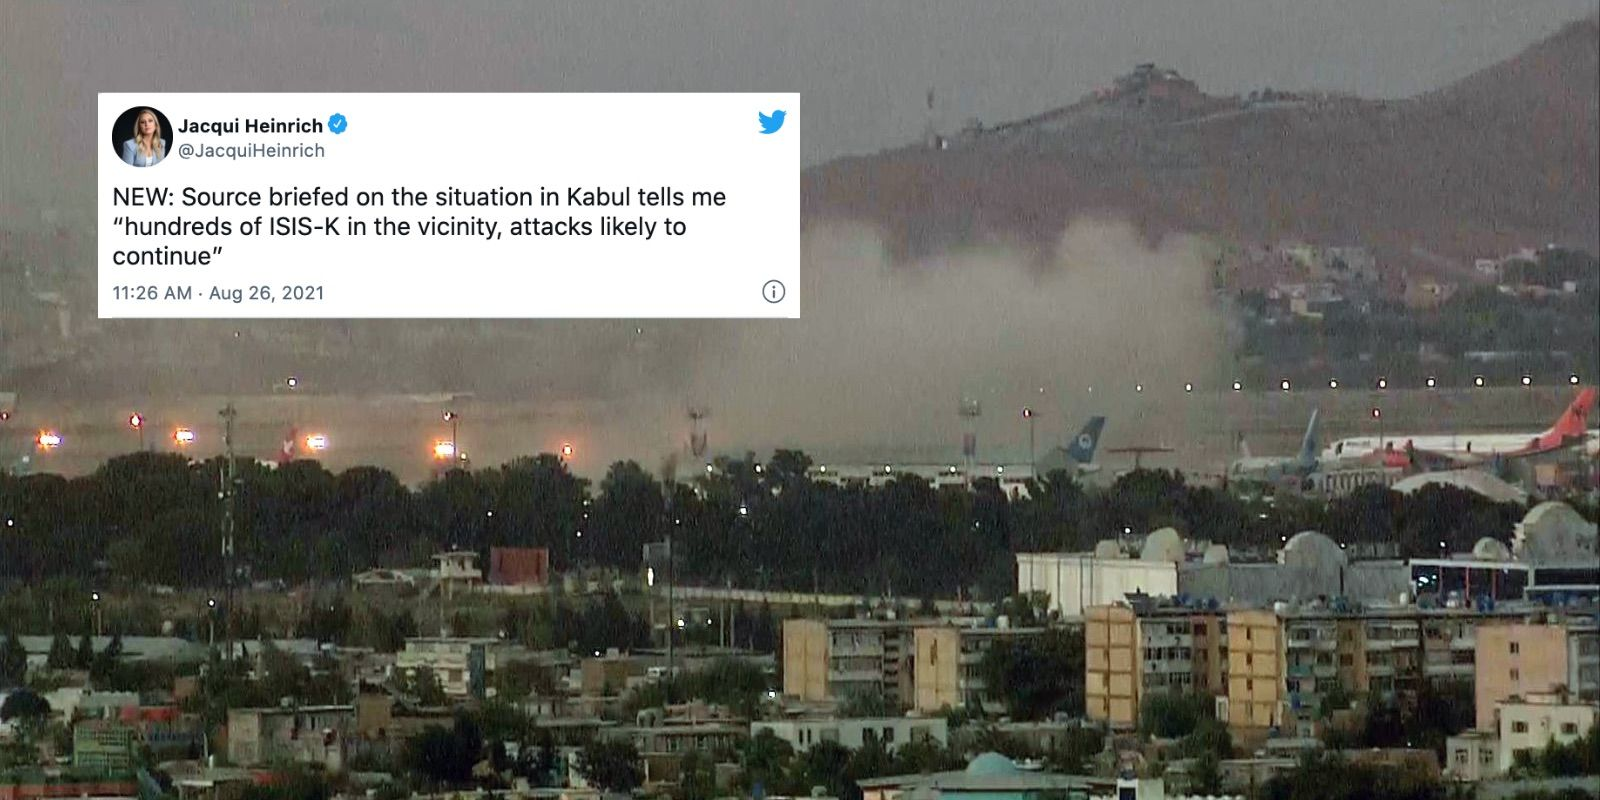 BREAKING: More ISIS-K attacks in Kabul likely: source